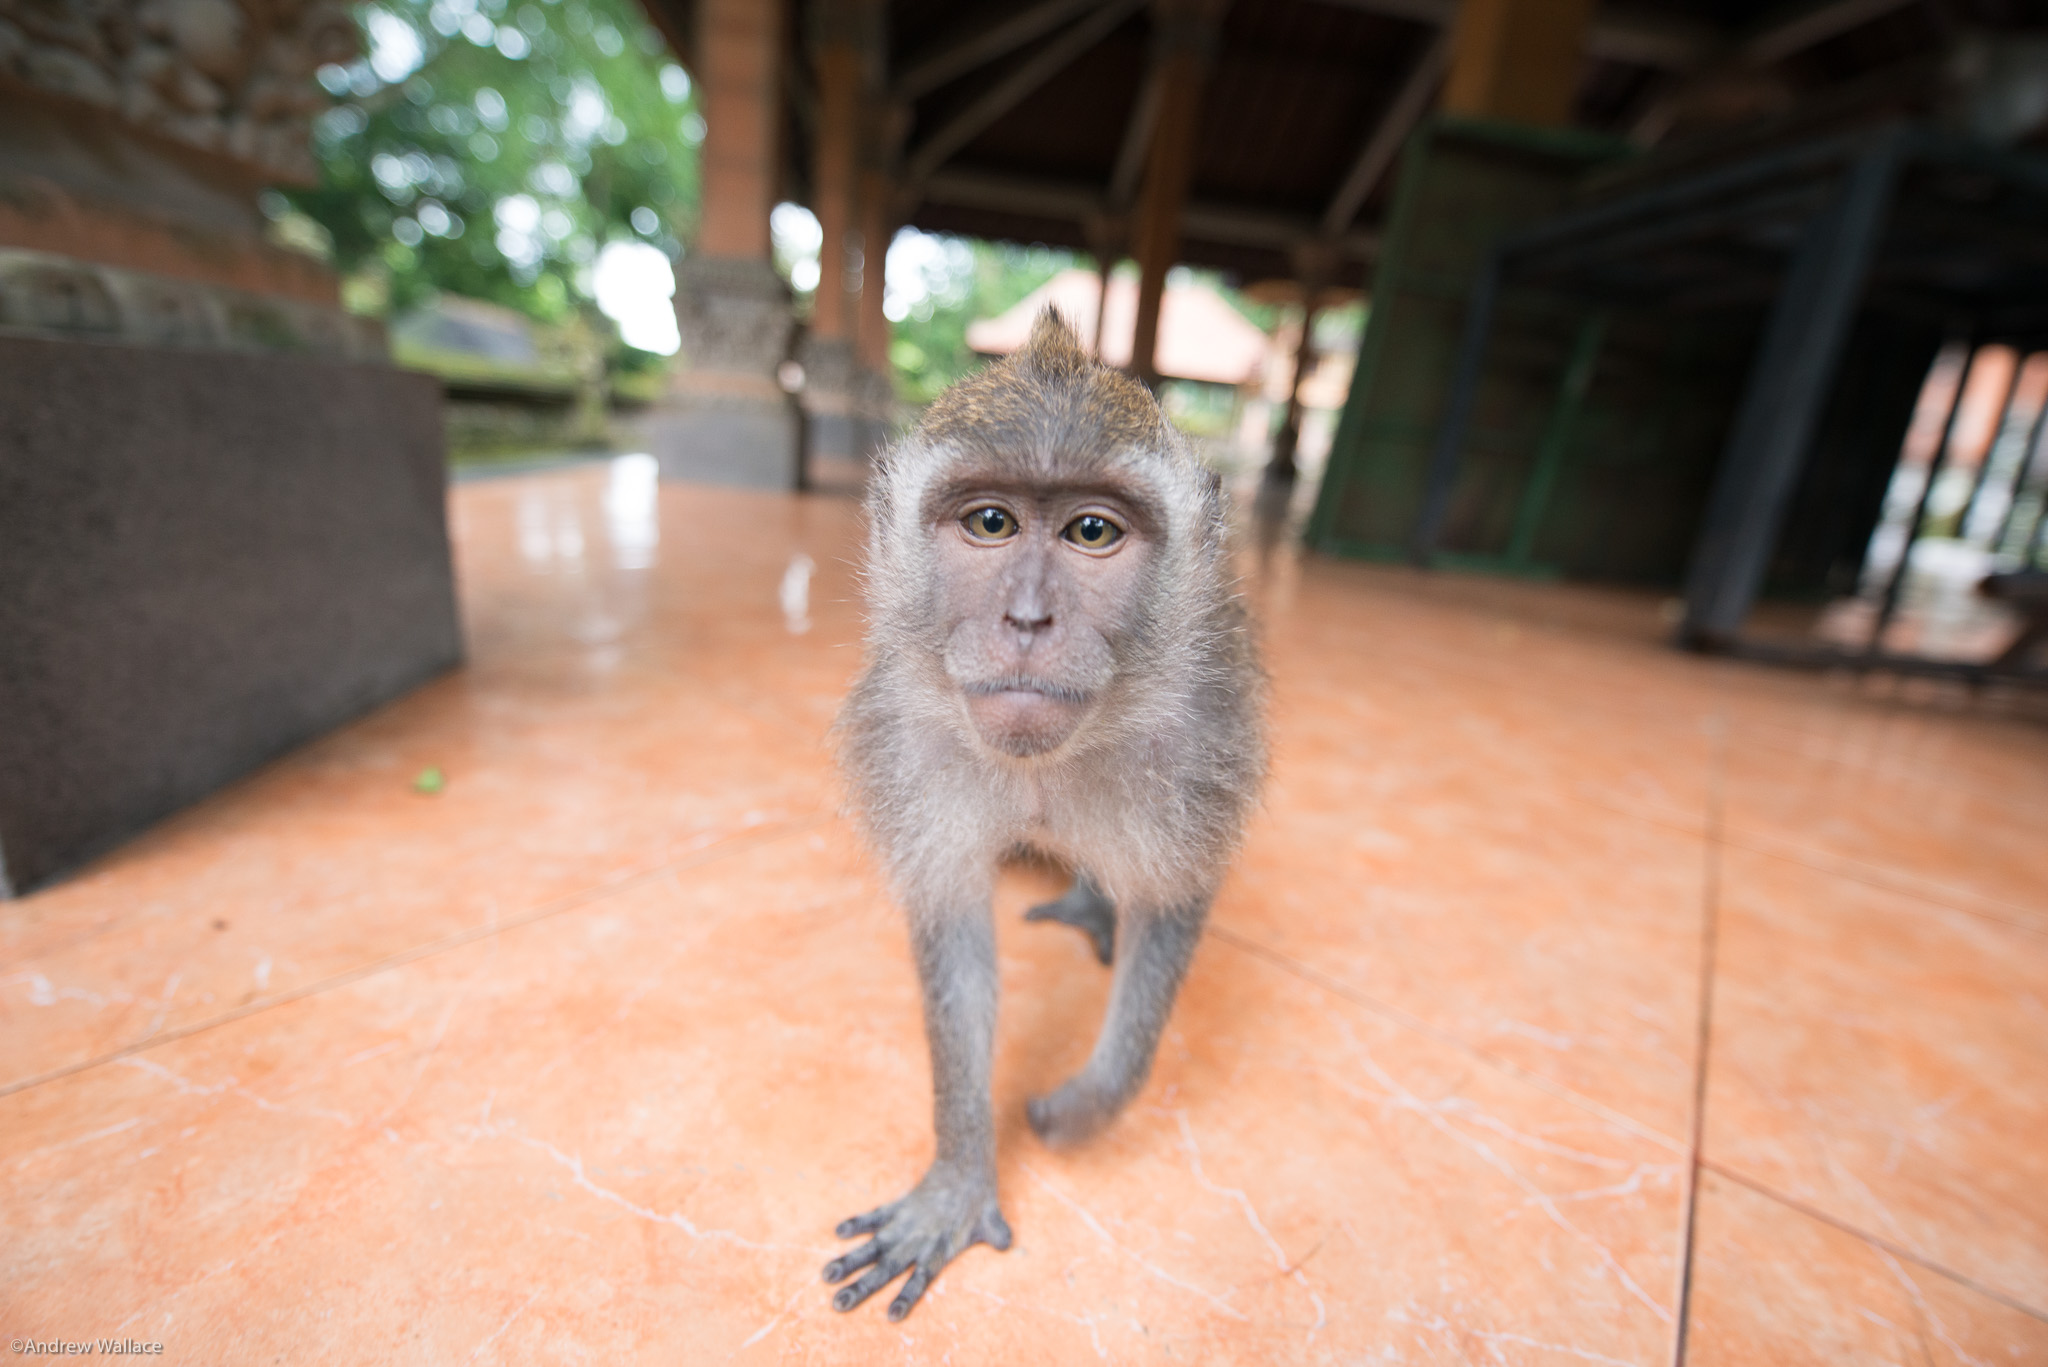 Travel    Balinese long-tailed monkey - Sacred Monkey Forest, Ubud, Bali    There is nothing like traveling to other countries to expand your mind, your viewpoint. I have been all over southeast Asia, and several times to Europe. Coming soon - Africa!